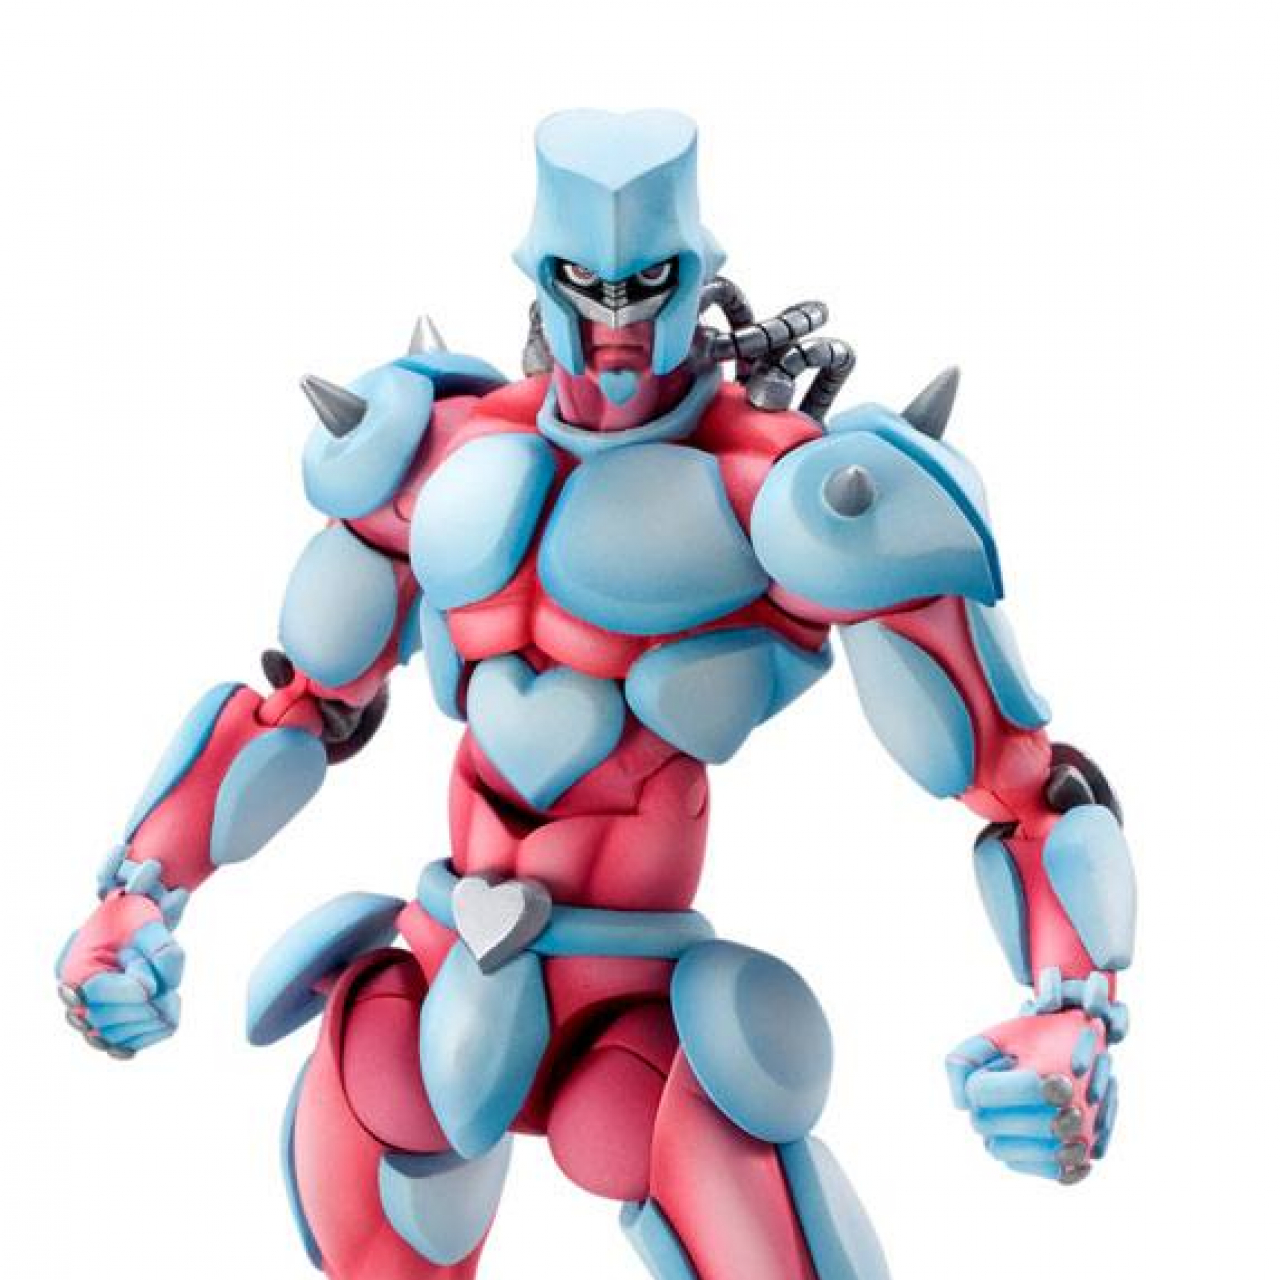 JoJo's Bizarre Adventure Super Action Action Figure Chozokado (Crazy Diamond) 16 cm